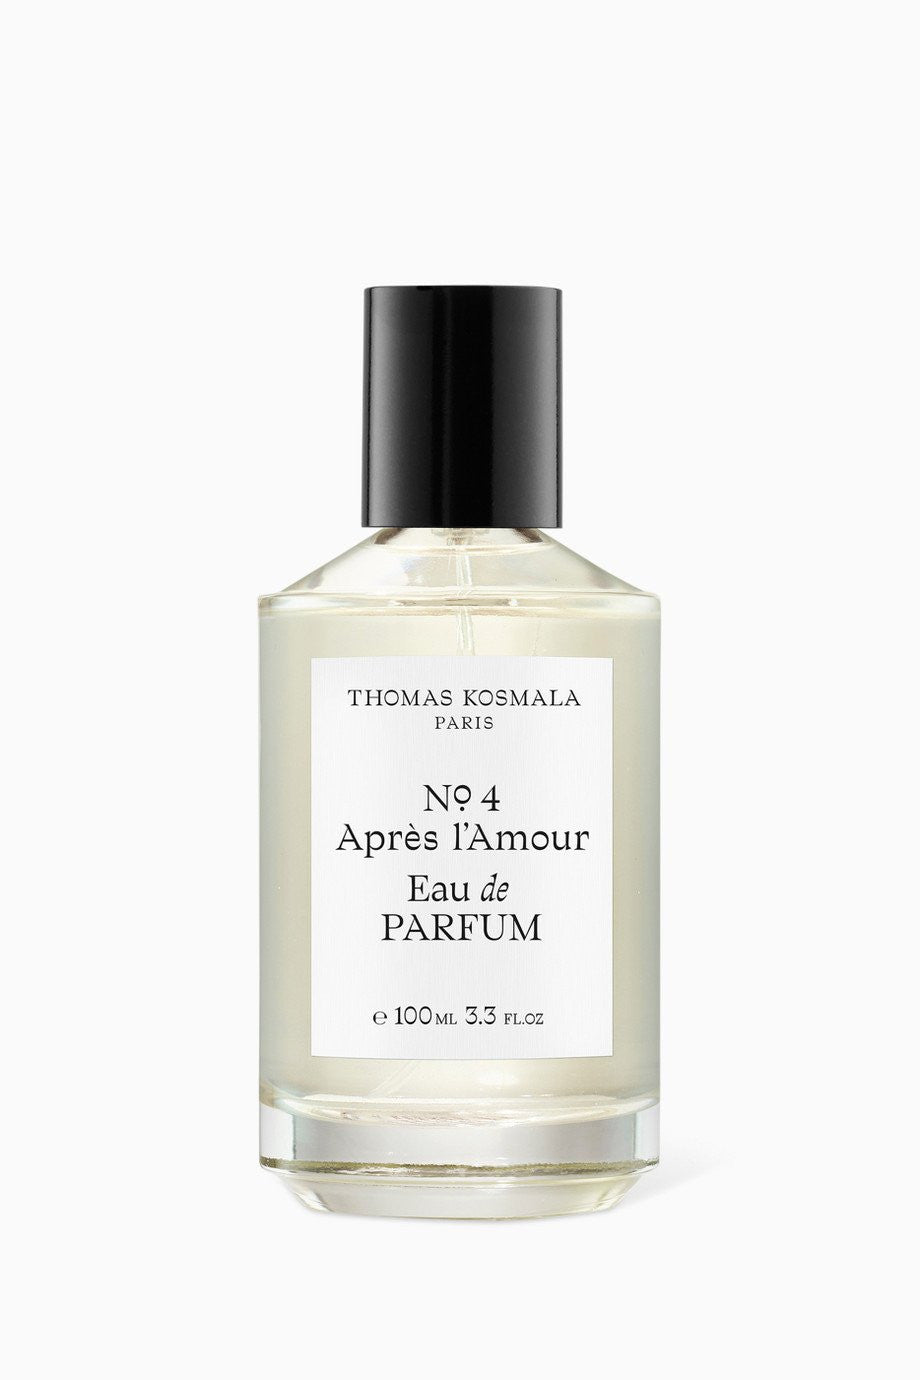 No. 4 Apres L'Amour Eau de Parfum 100ml by Thomas Kosmala - markaperfumery